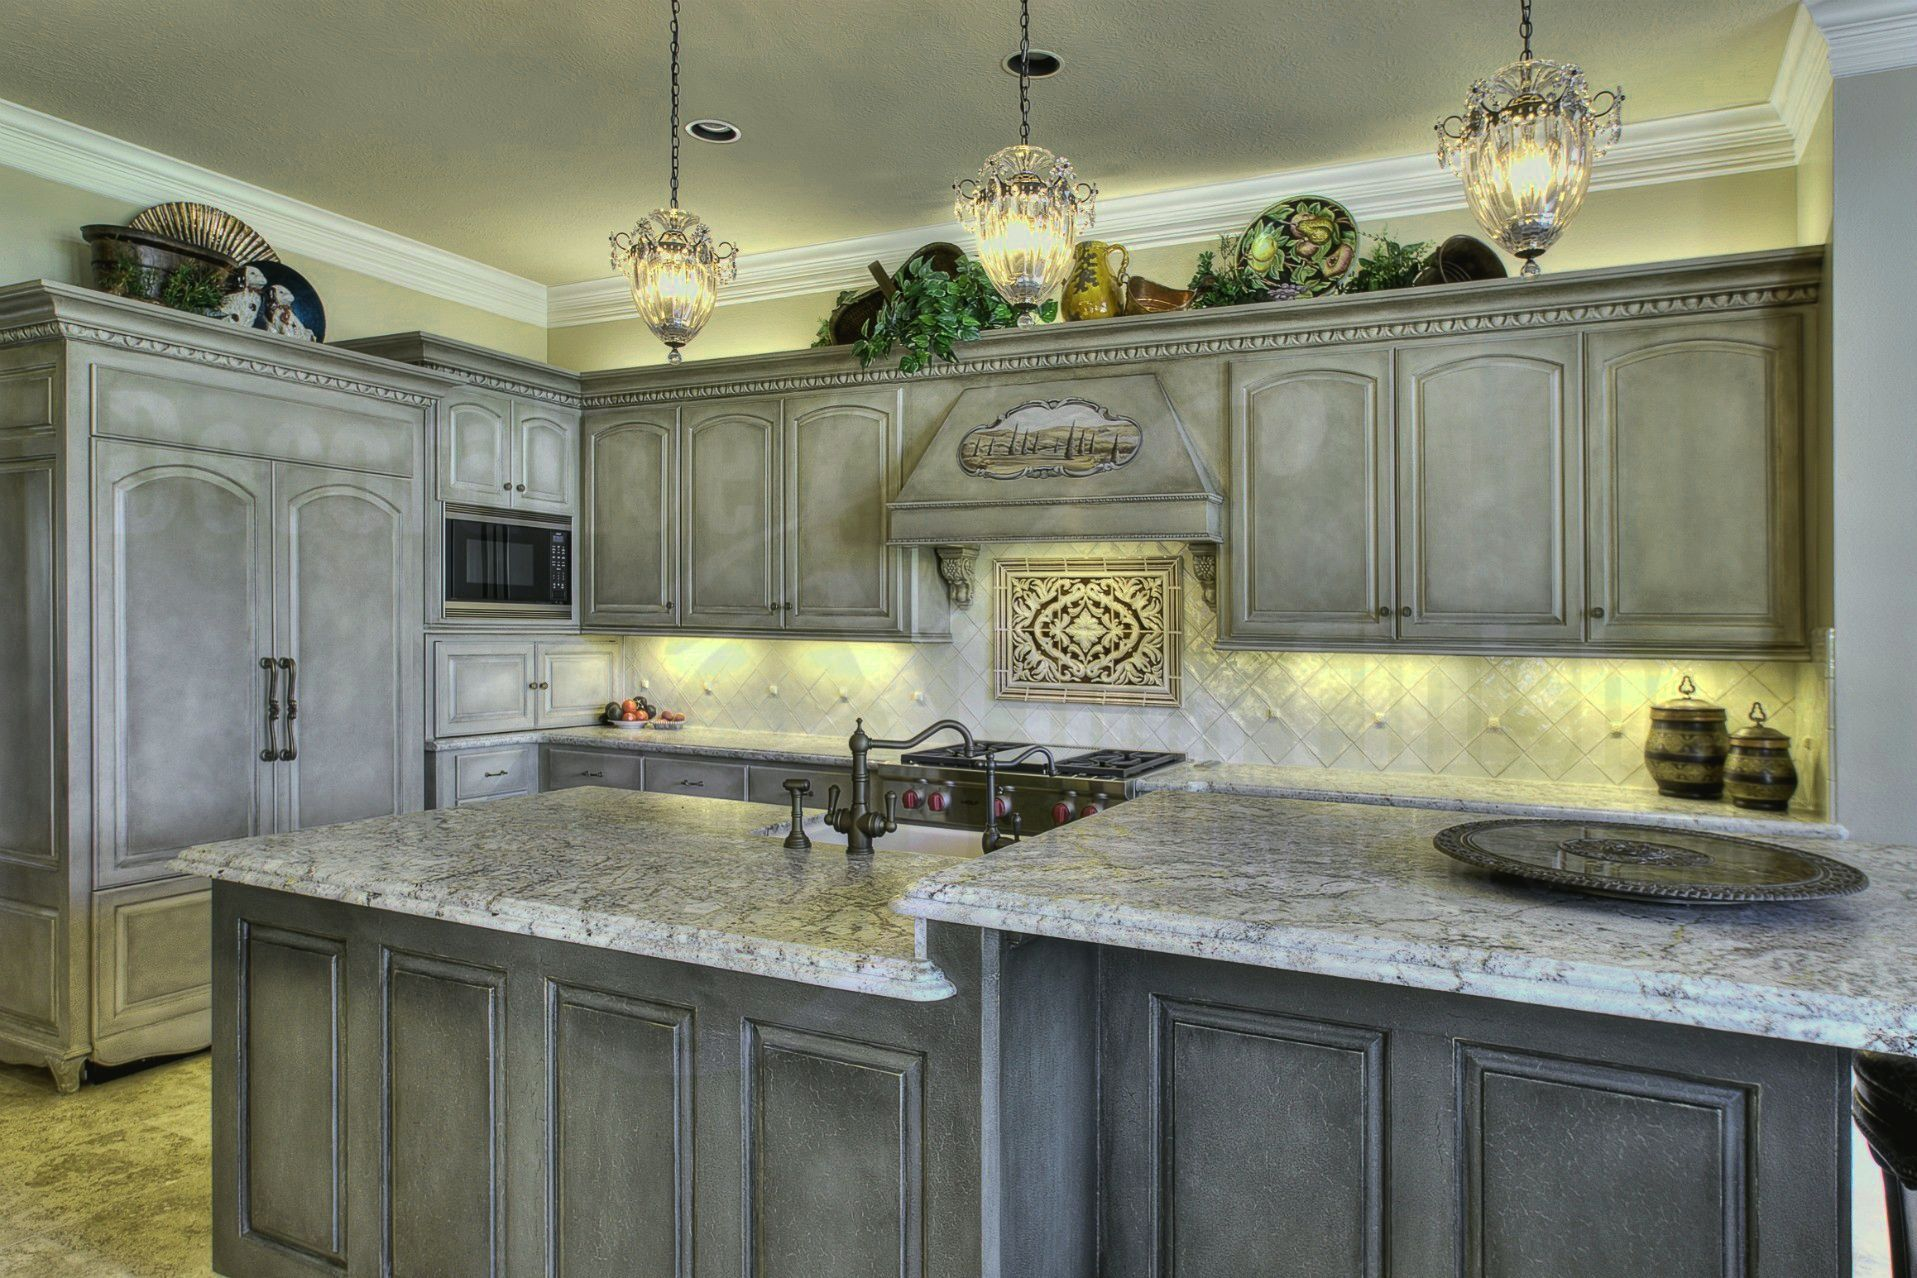 Pair Gray Cabinets With Warm Colors And Materials Gray Can Appear Auste Kitchen Cabinets Painted Grey Shabby Chic Kitchen Cabinets Distressed Kitchen Cabinets